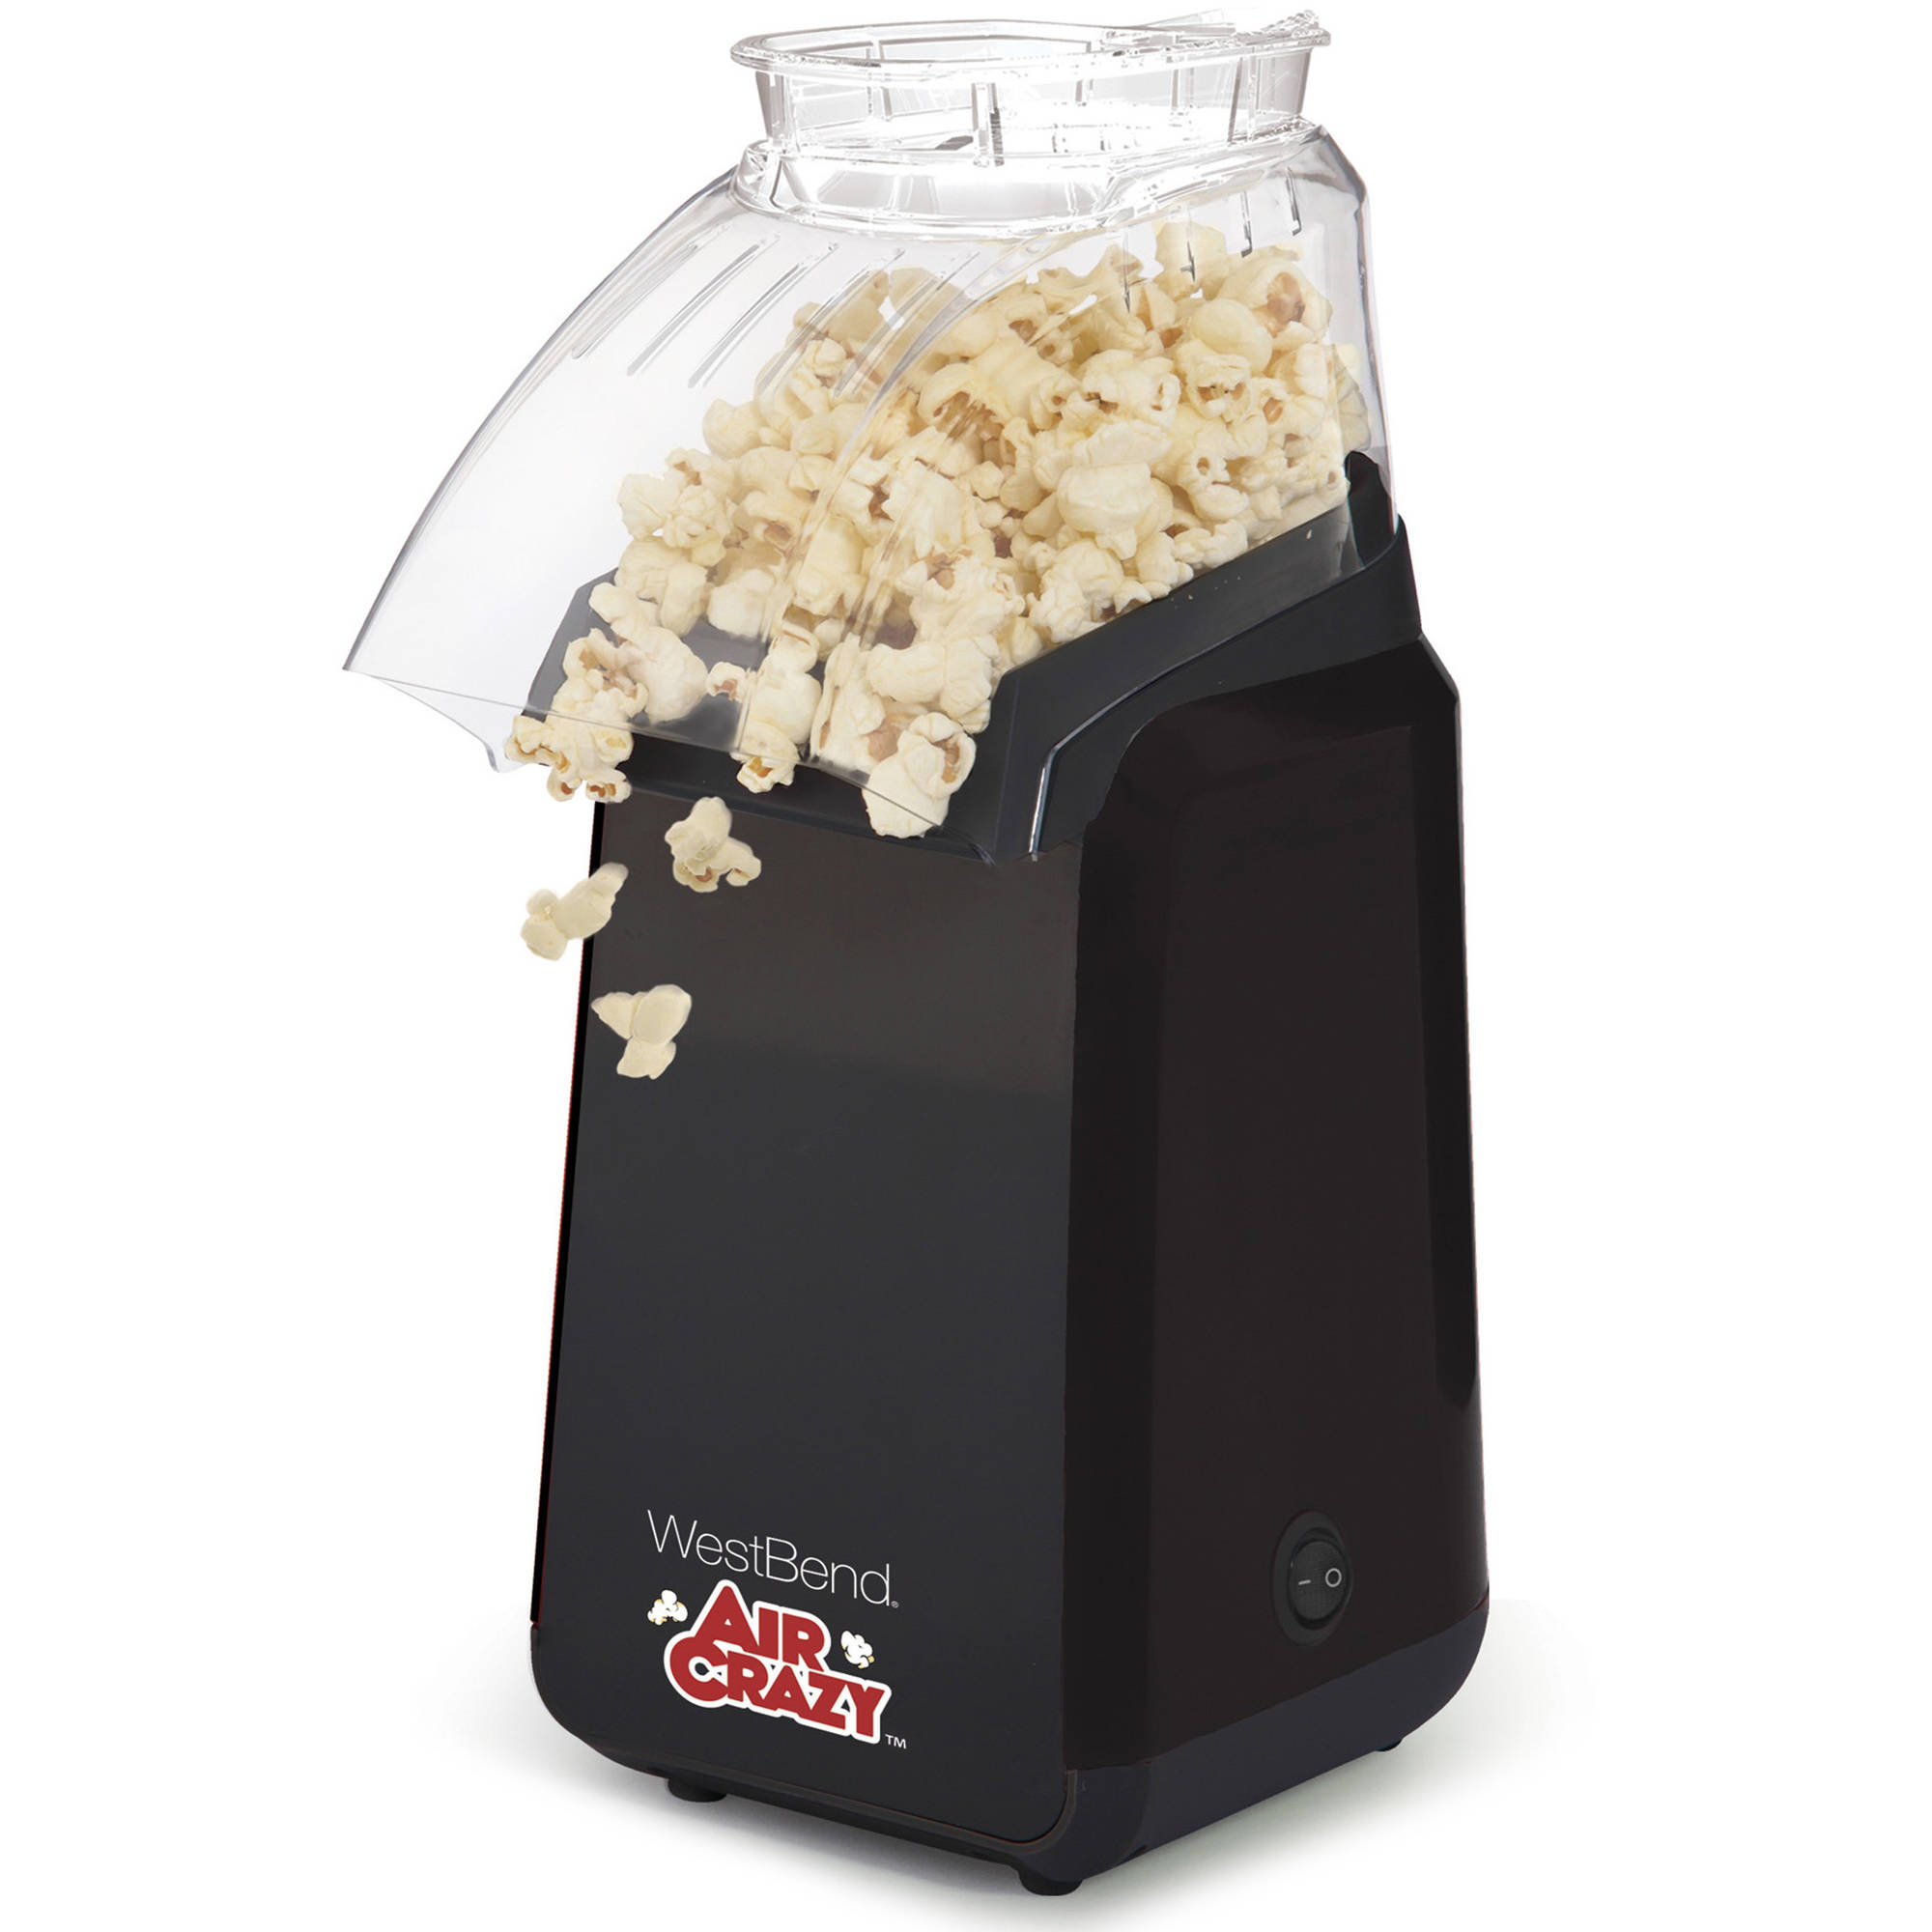 WestBend Air Crazy Popcorn Machine, Black